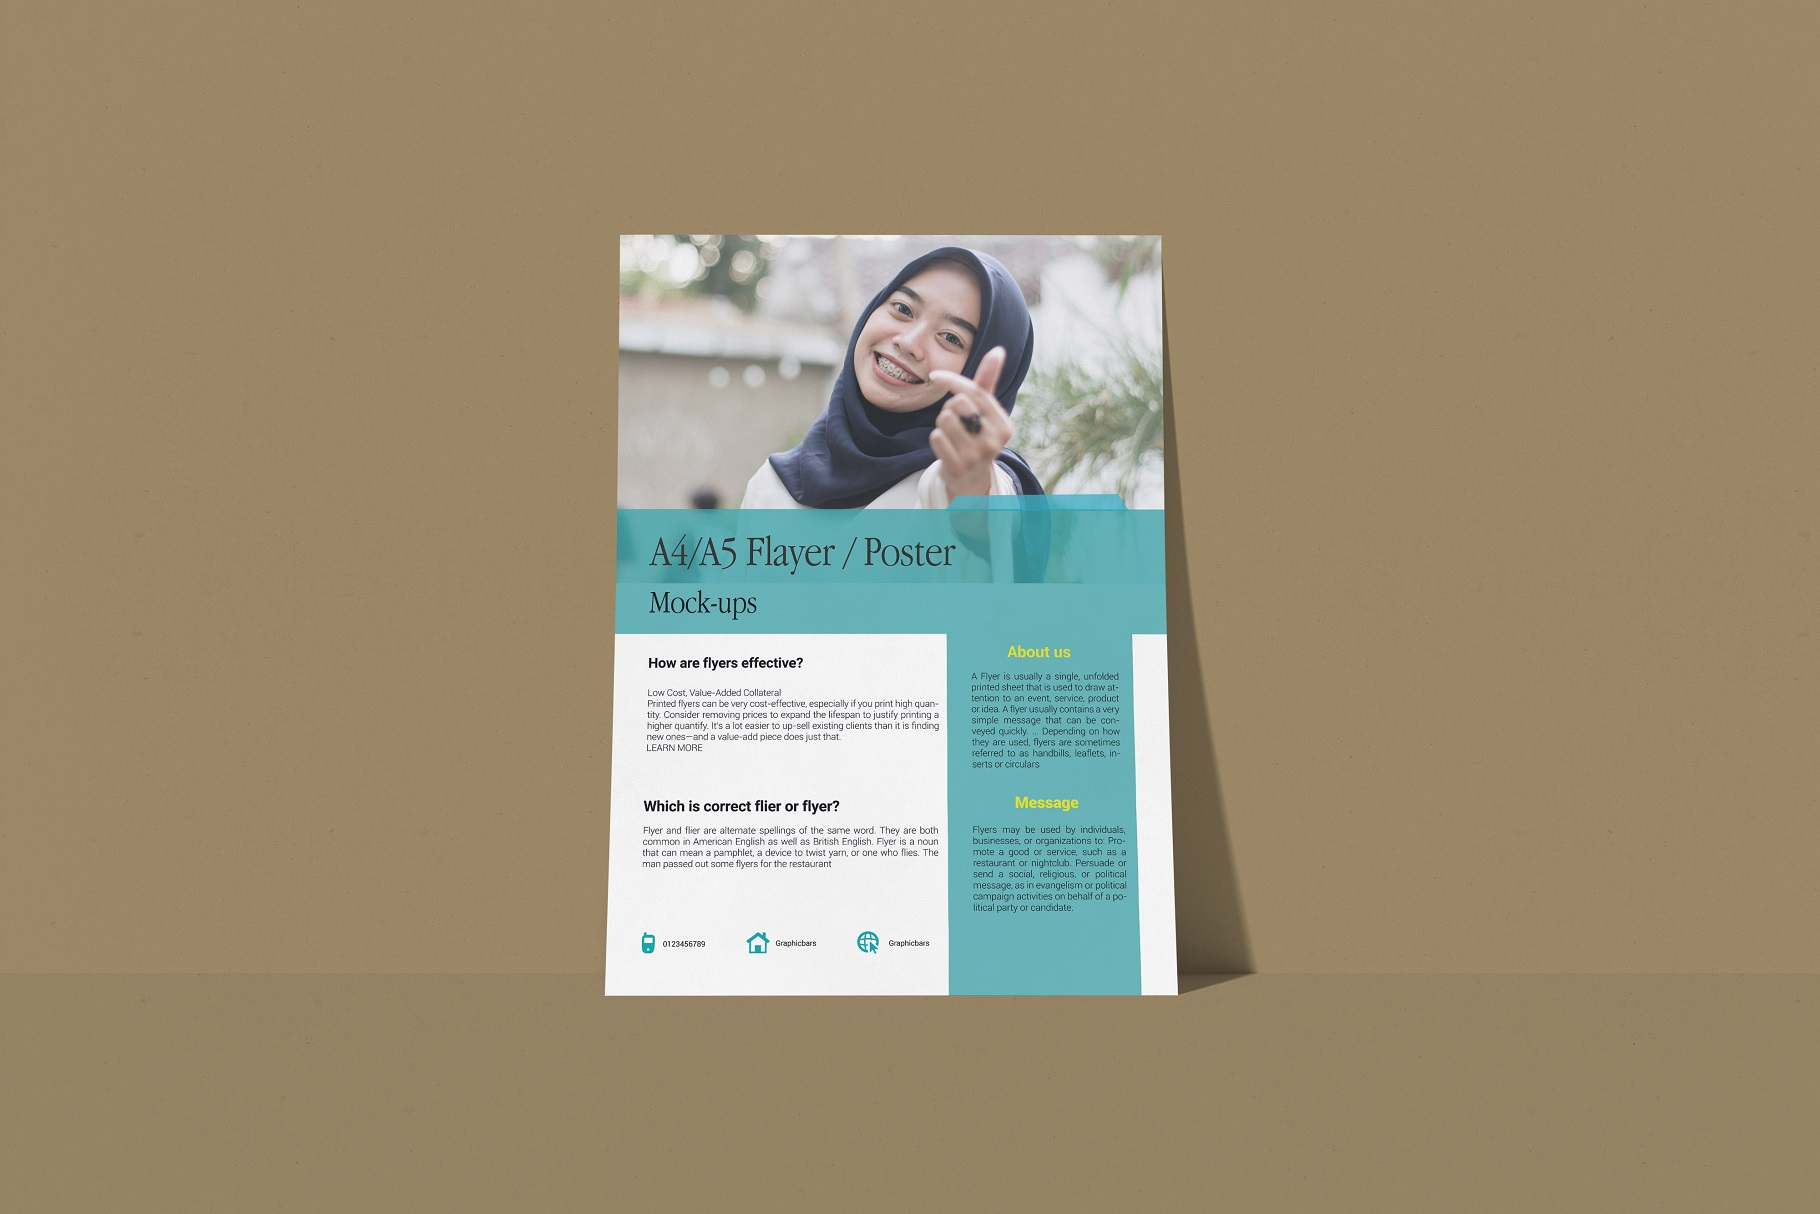 A4 Flyer / Poster Mockup example image 3